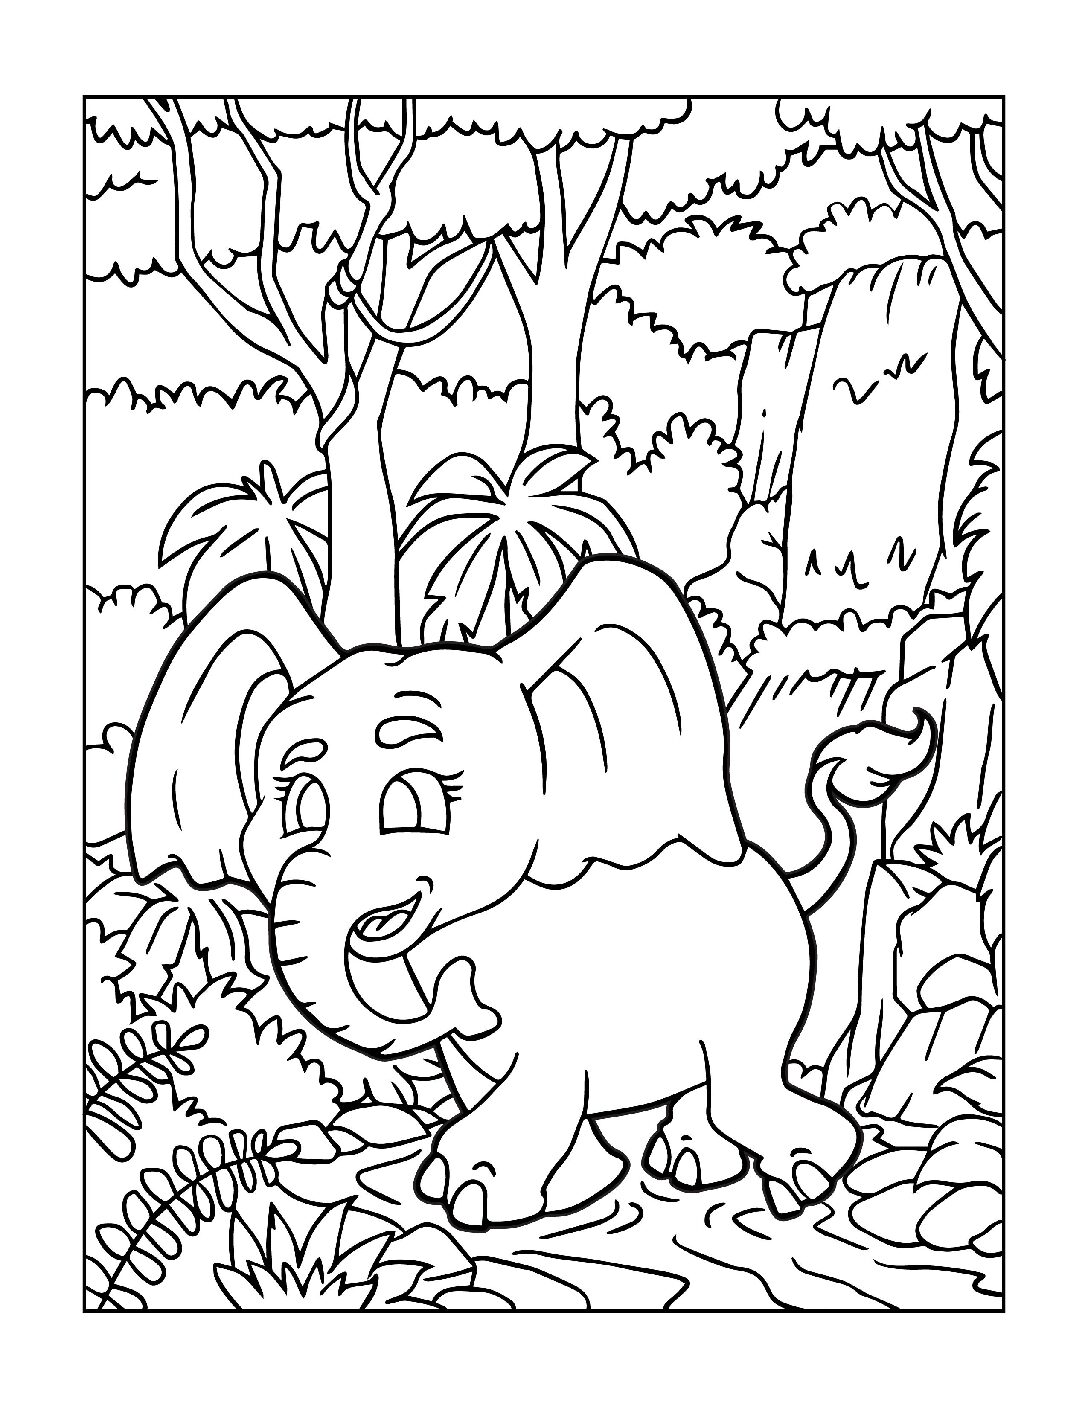 Coloring-Pages-Zoo-Animals-1-01-1-pdf Free Printable  Zoo Animals Colouring Pages